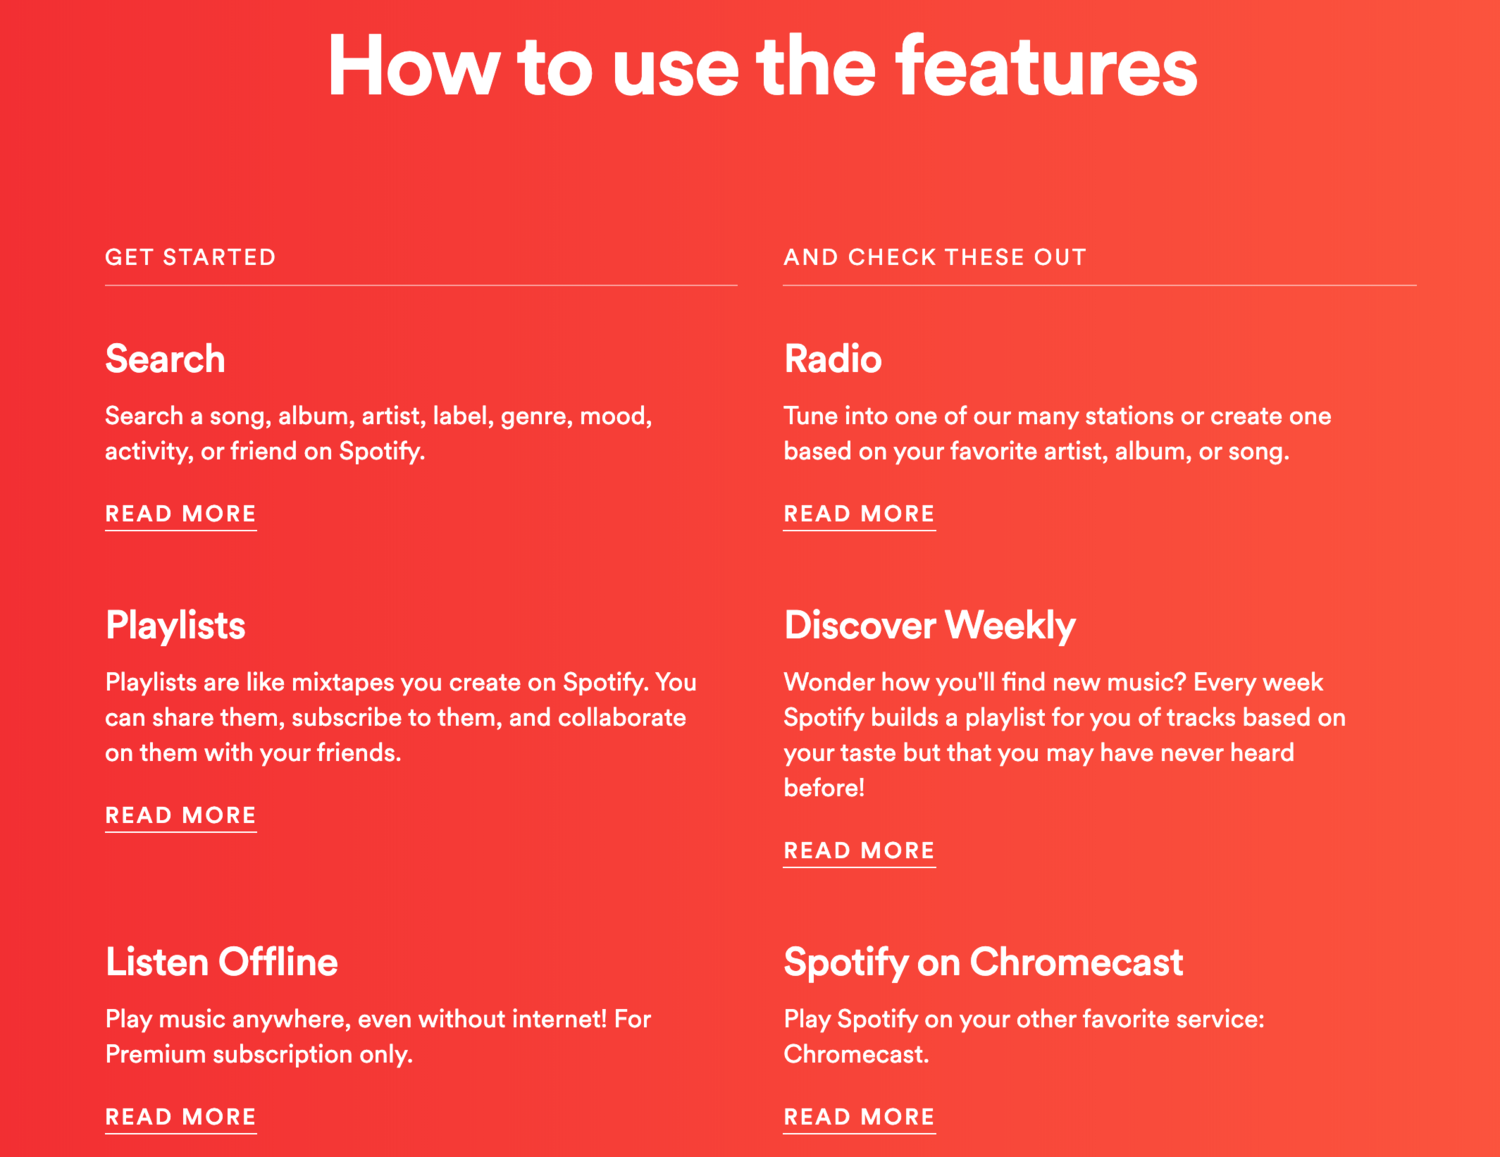 Spotify help features self-service